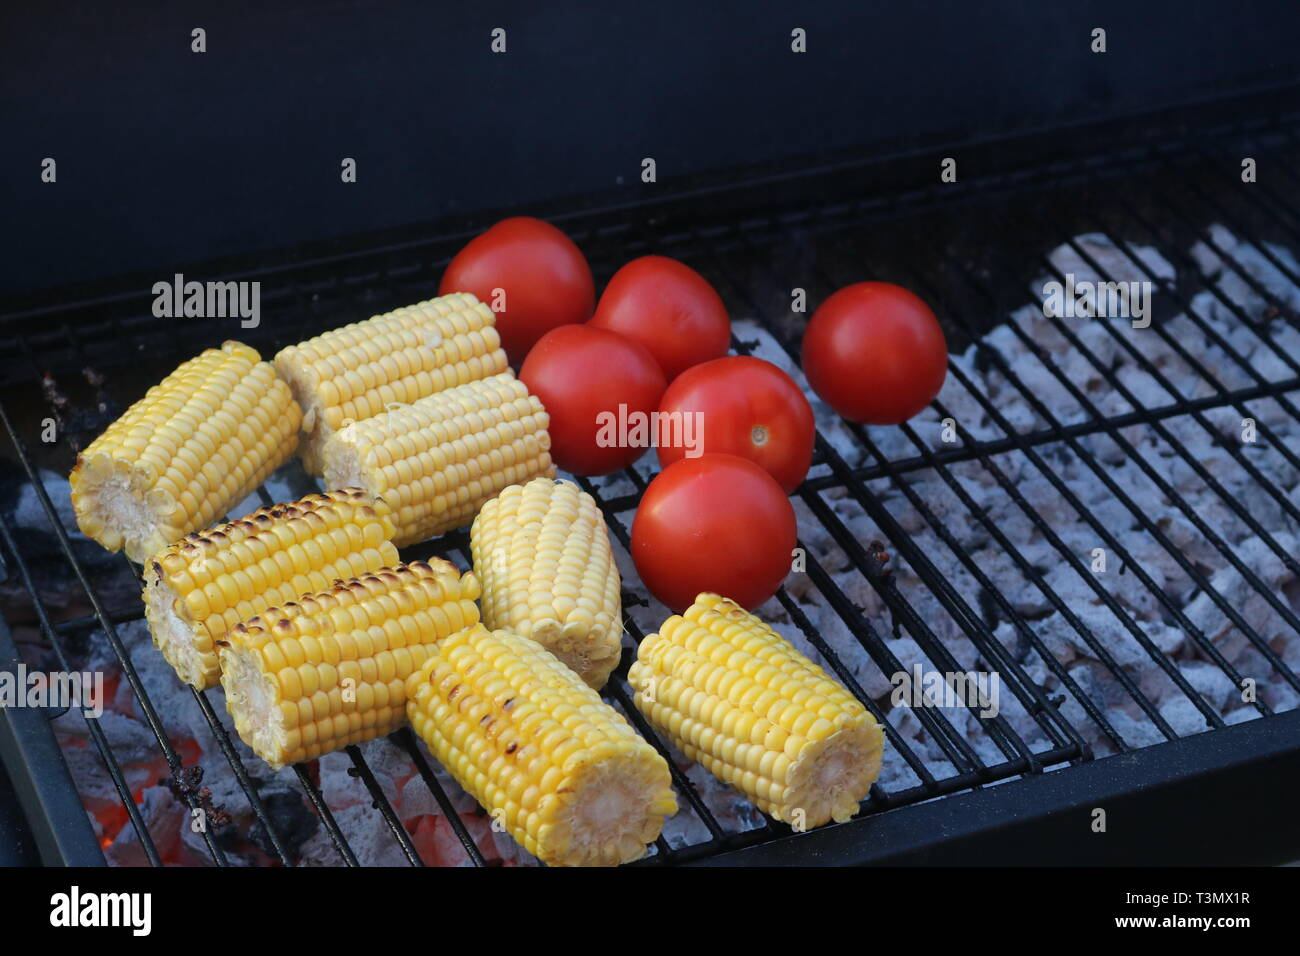 Corn on the cob and tomatoes on a barbecue Stock Photo